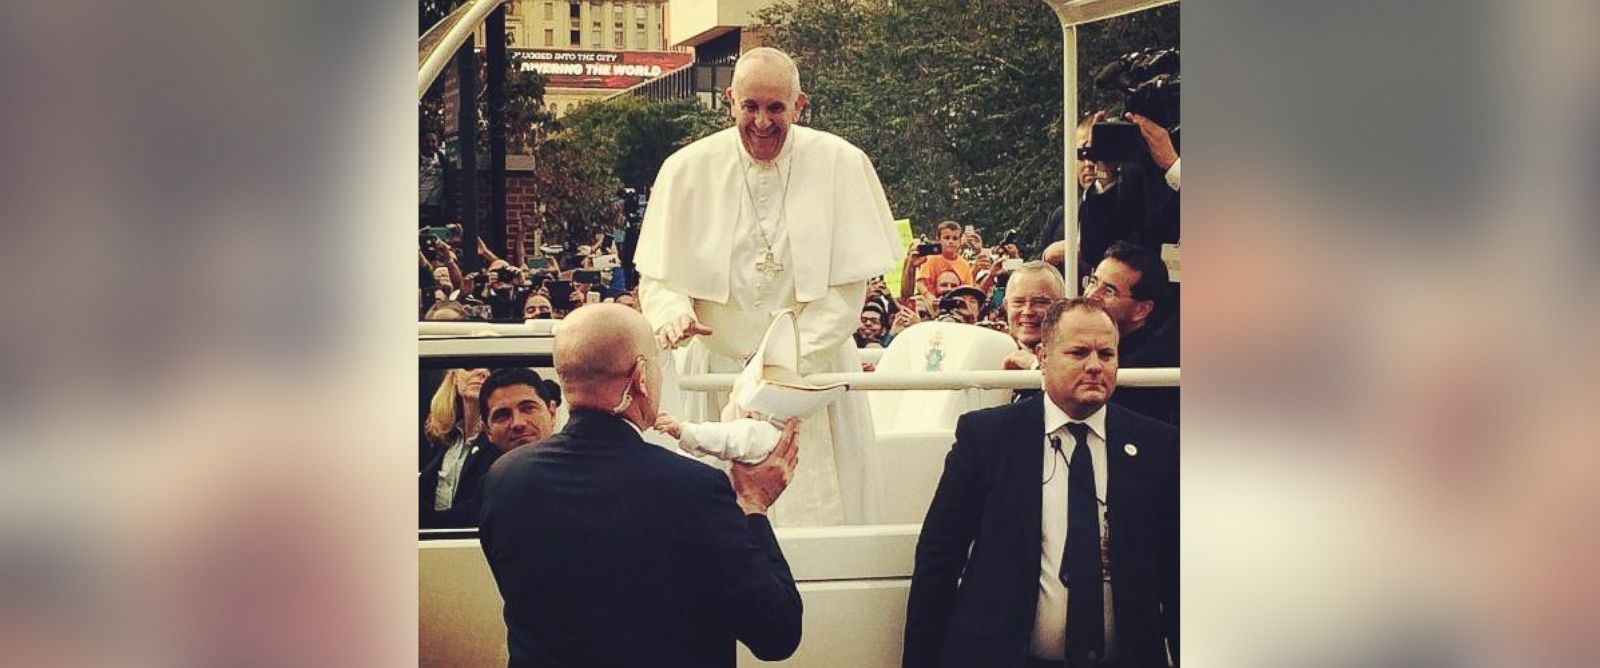 PHOTO: Dana and Daniel Maddens daughter, Quinn, met Pope Francis in Philadelphia on Sept. 26, 2015.